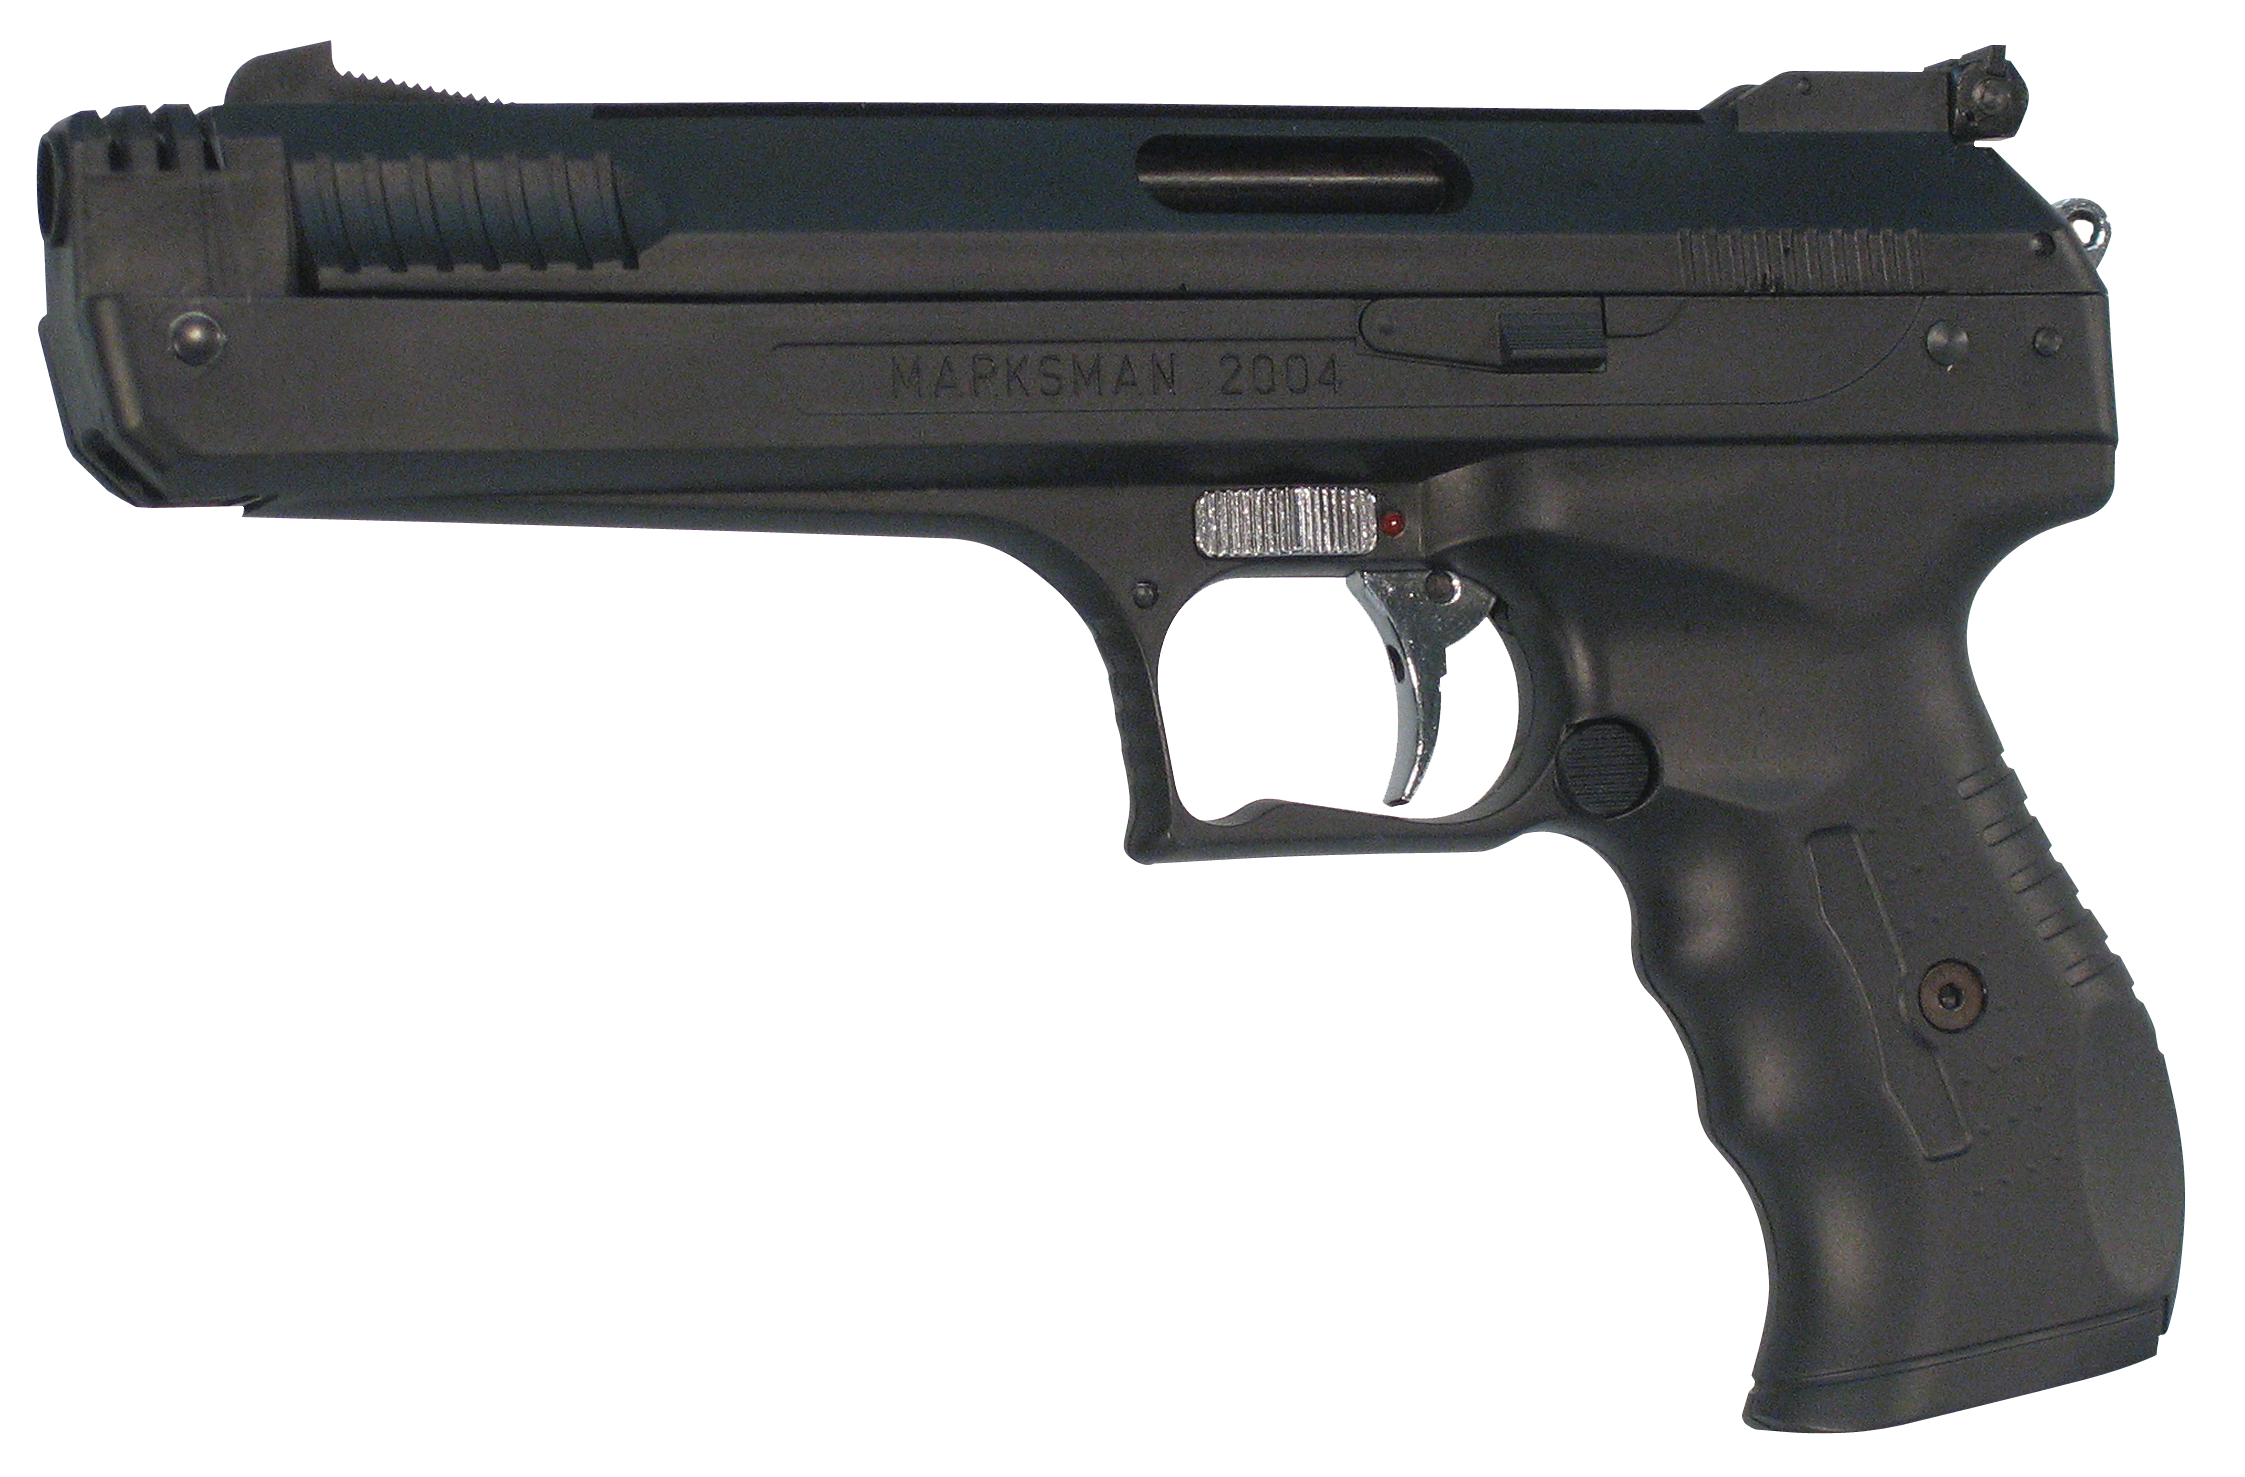 Beeman 2004 Deluxe Air Pistol .177 Pellet Post Front/Adj Rear Syn Grip/Frame Black